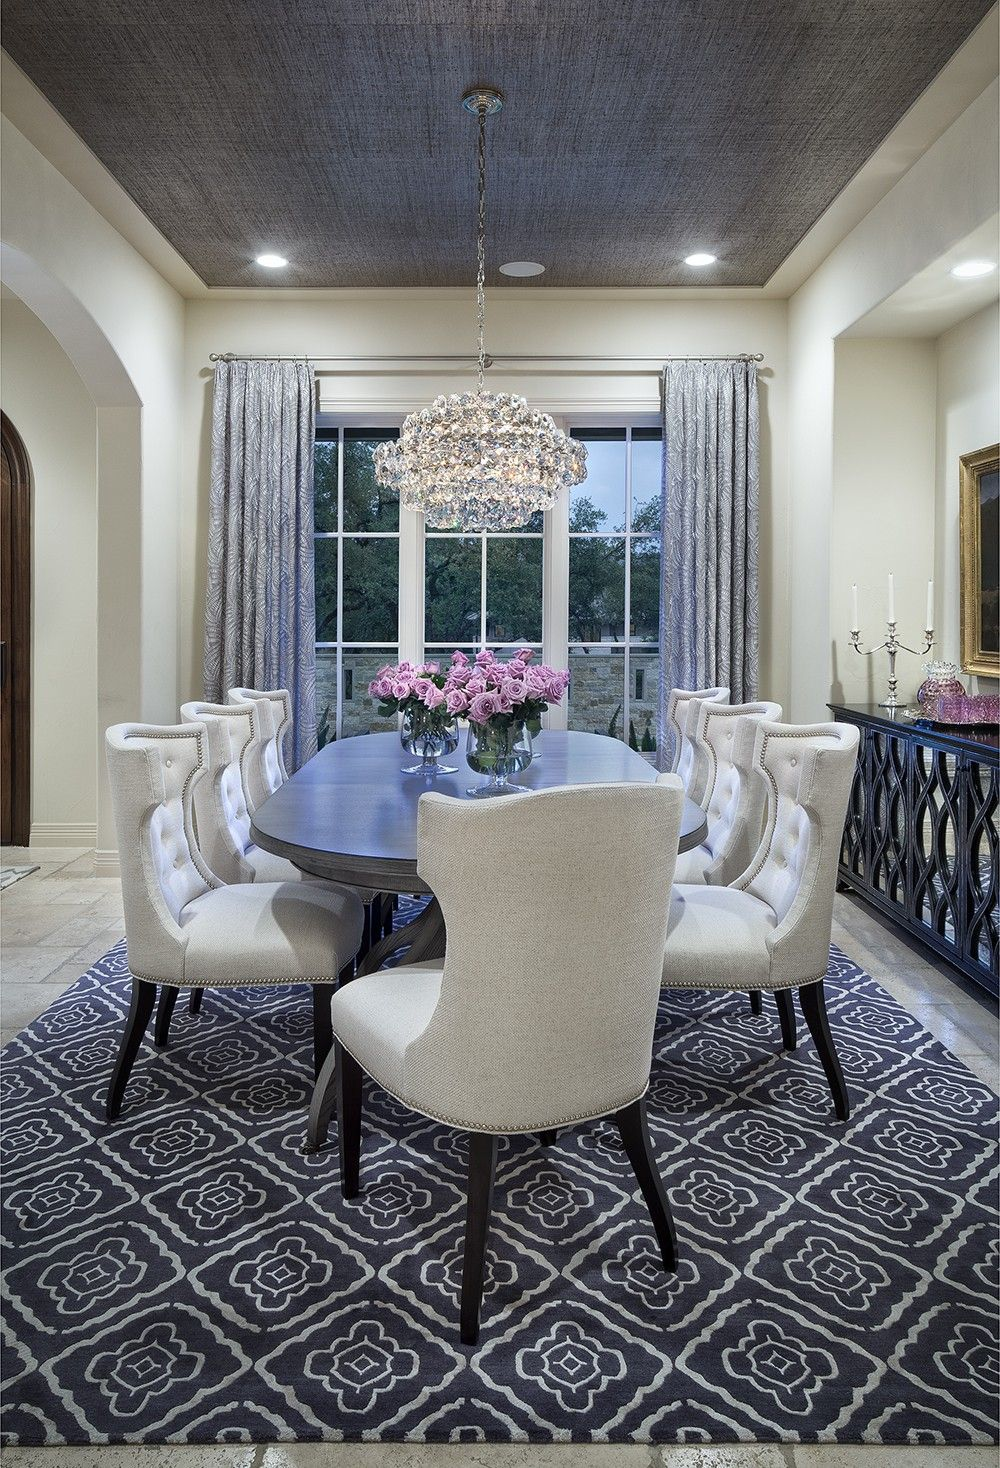 Cream Colored Dining Room With Grey Rug Curtains And Ceiling